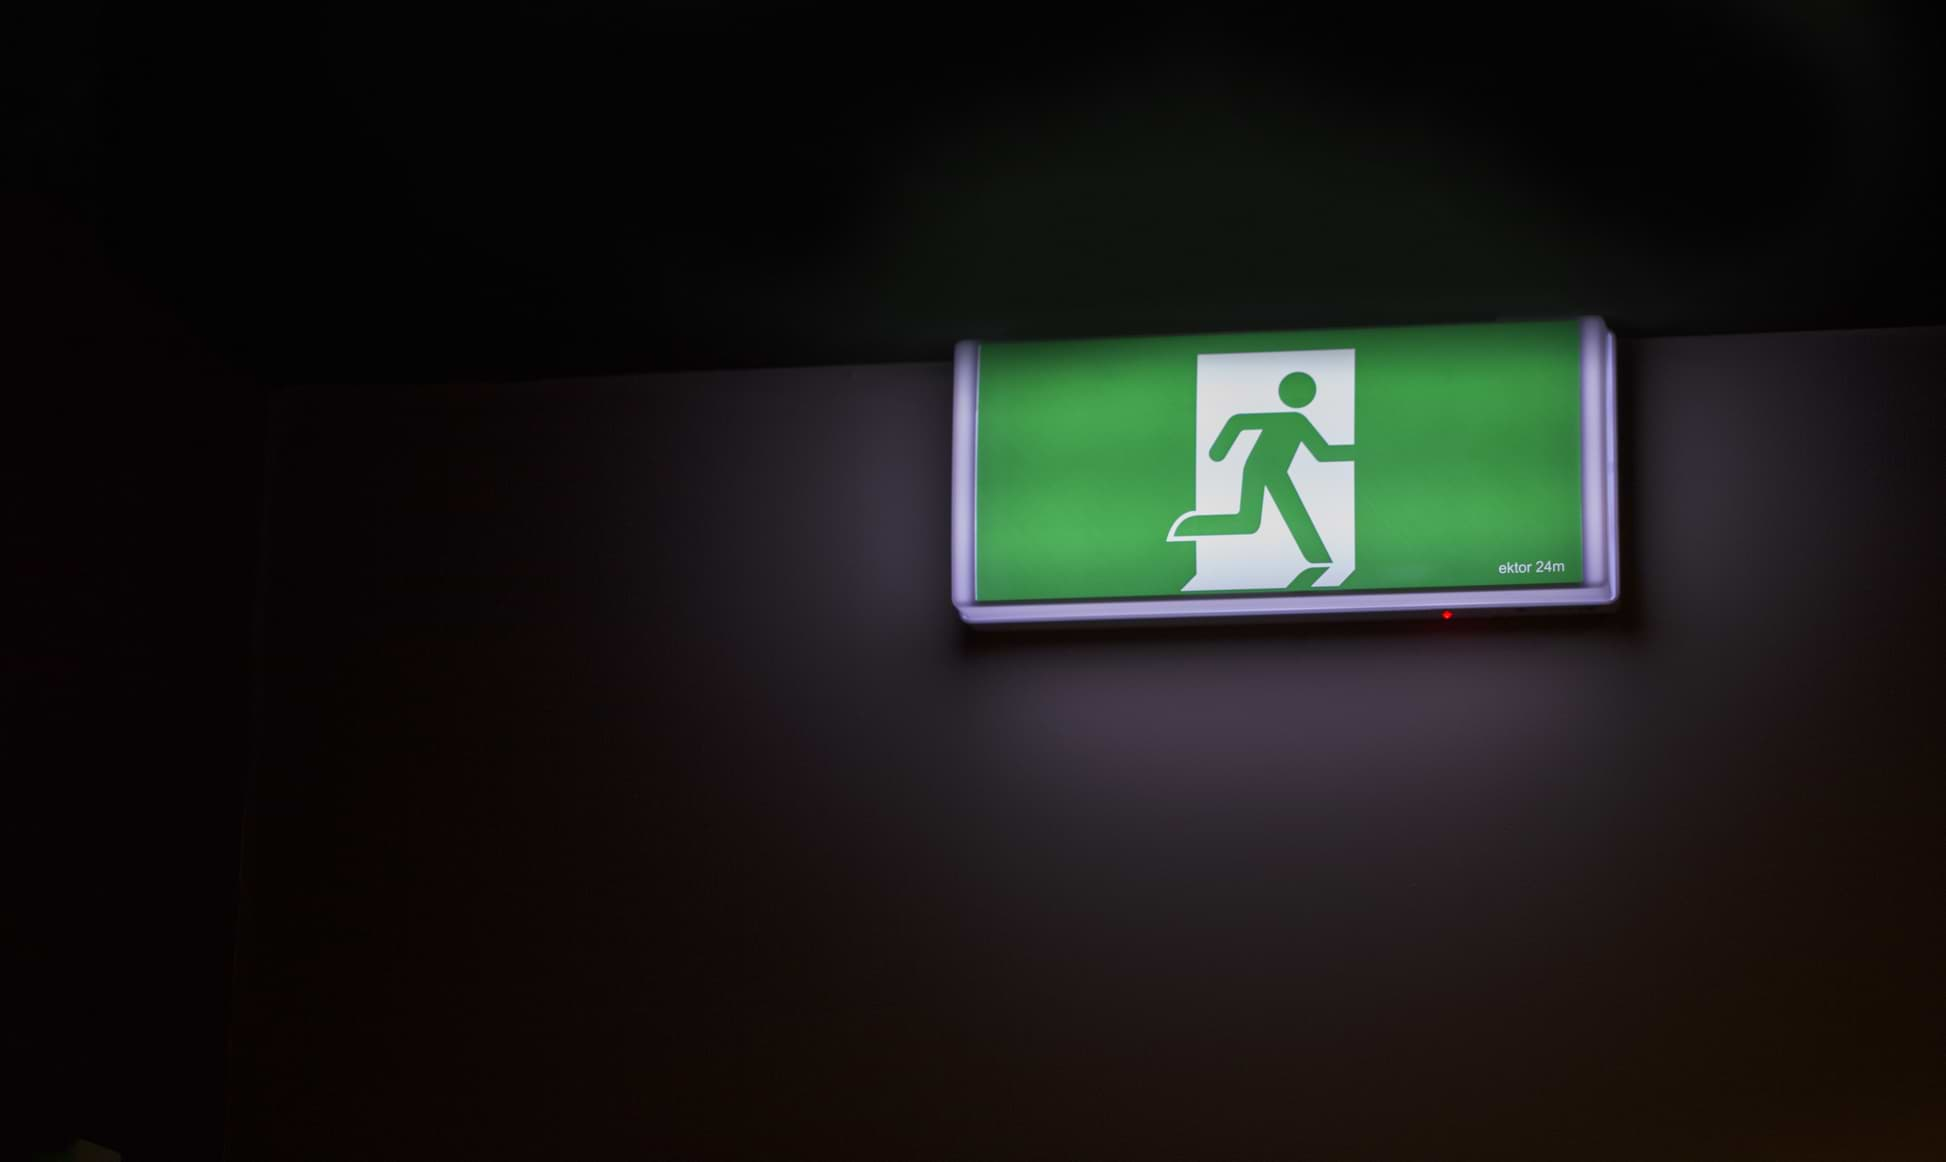 emergency light sign in a dark room